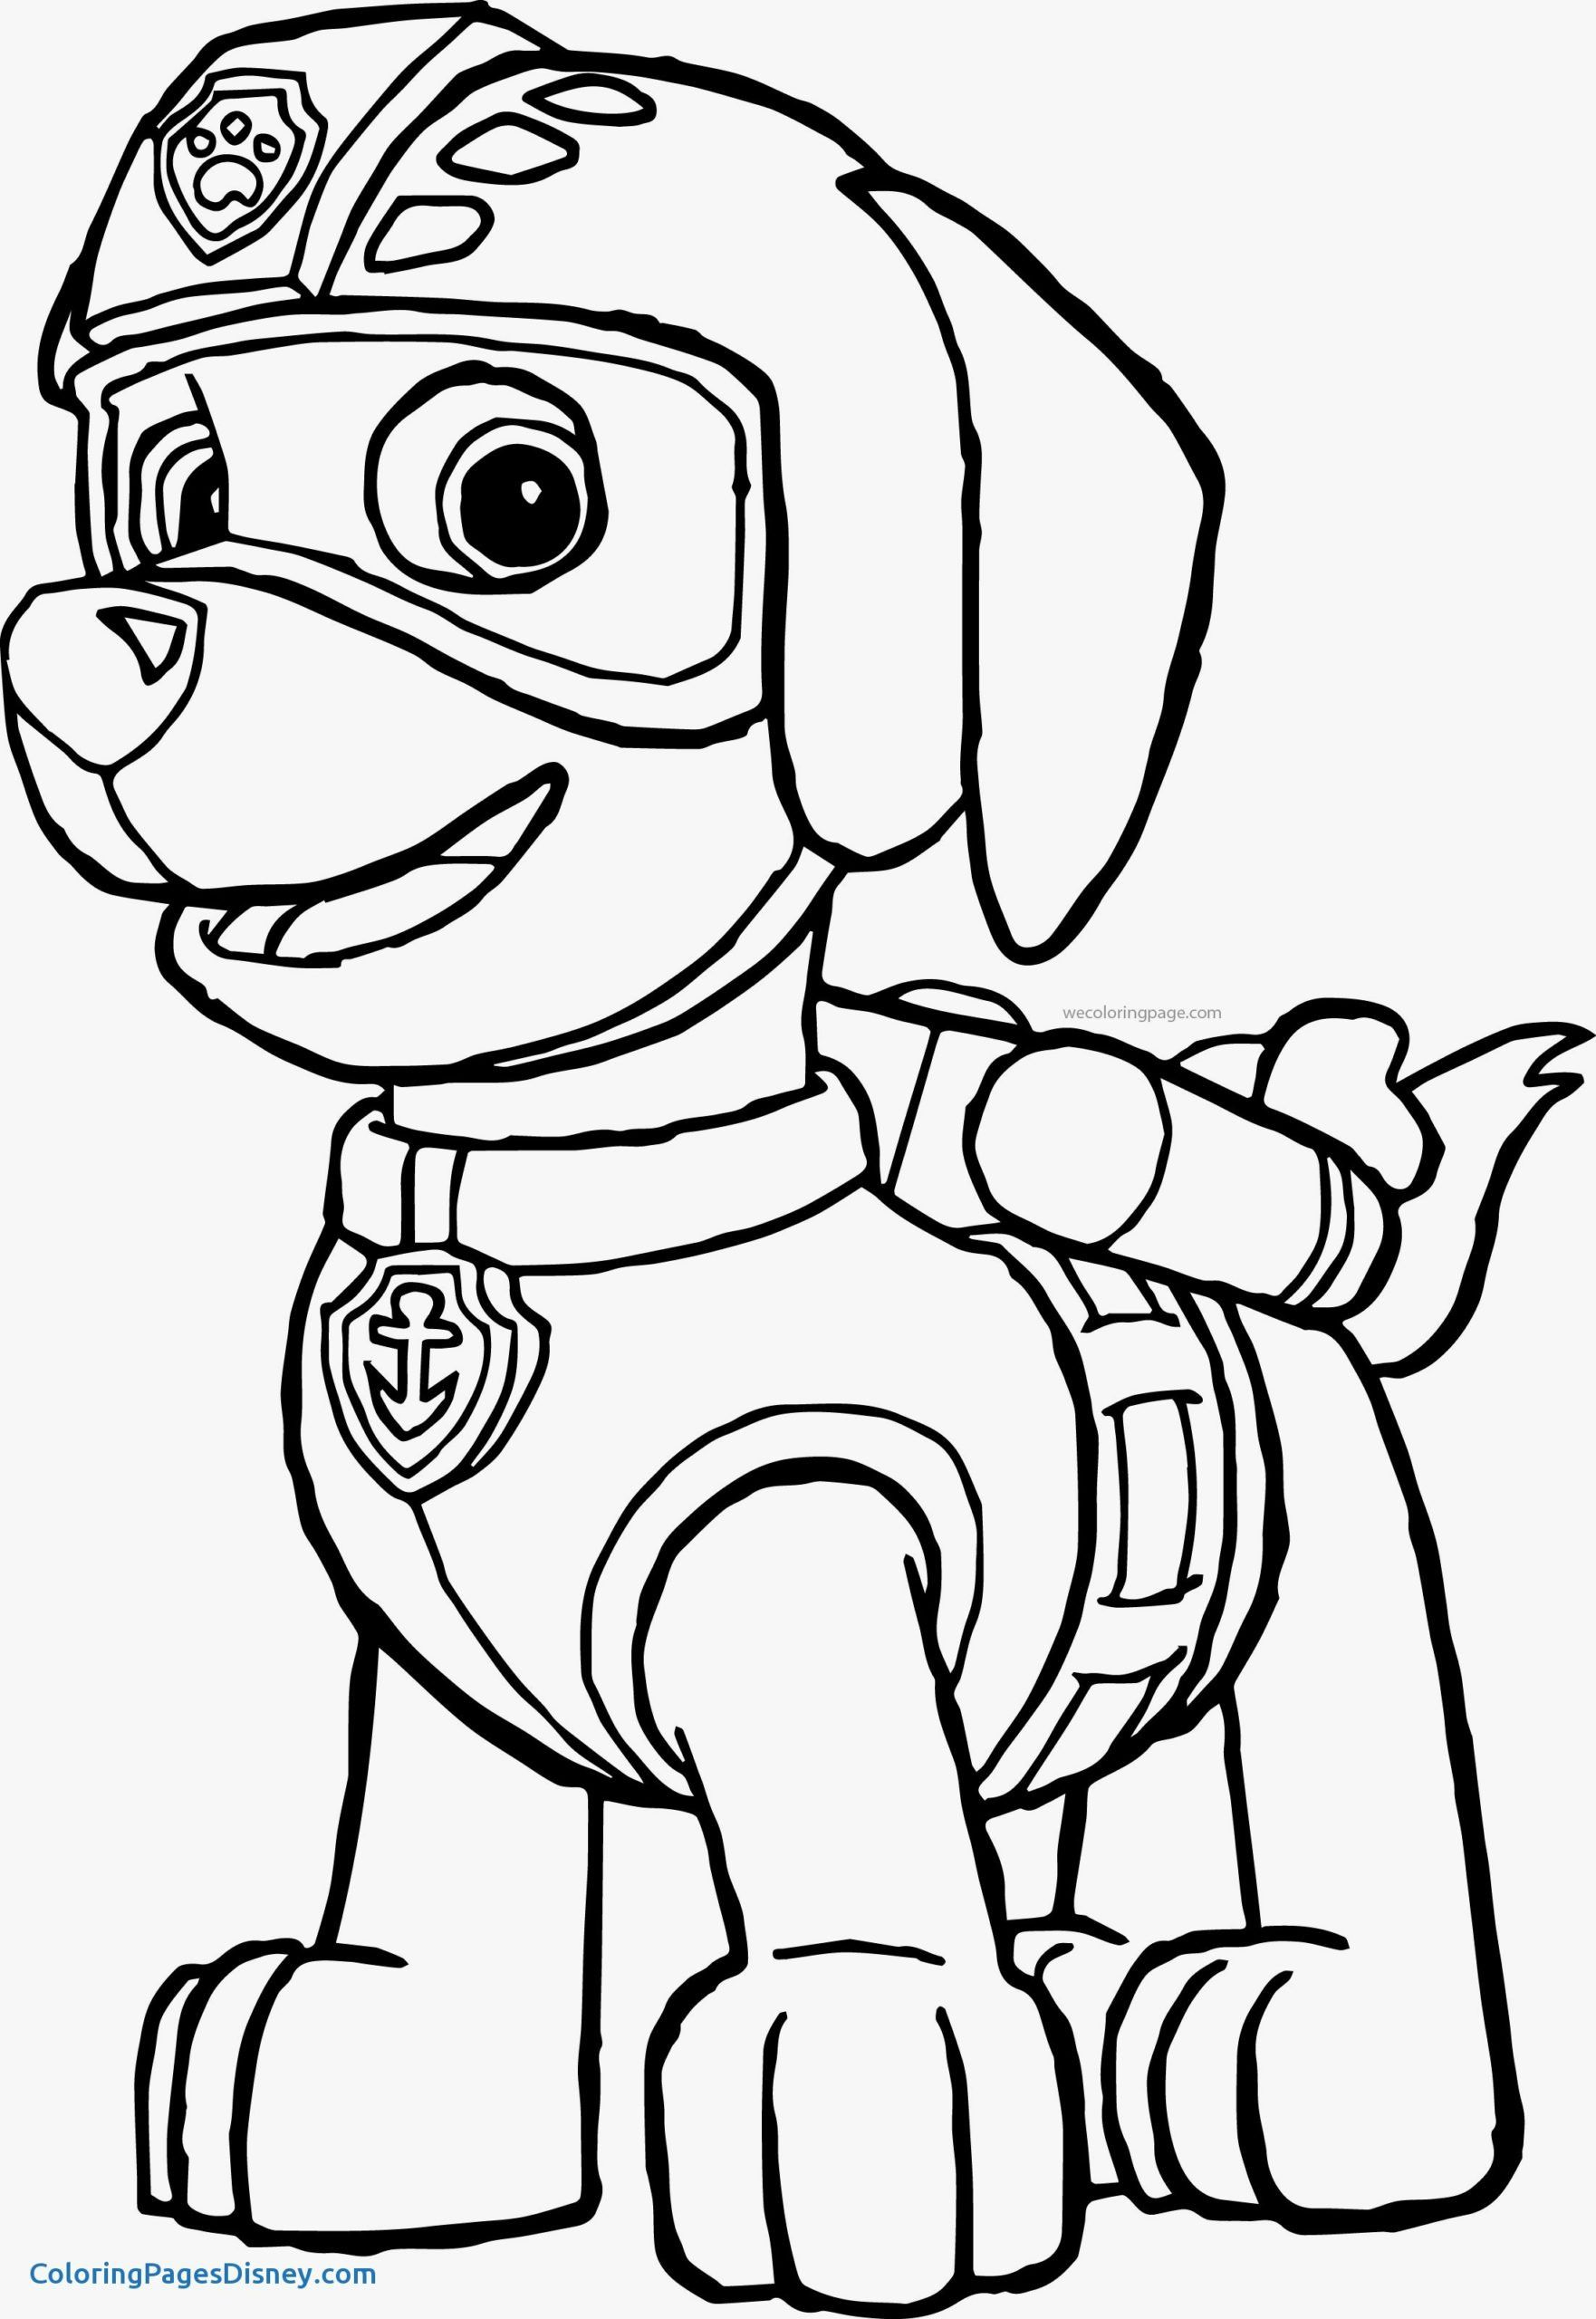 Dog Paw Coloring Page Youngandtae Com Paw Patrol Coloring Paw Patrol Coloring Pages Paw Patrol Printables